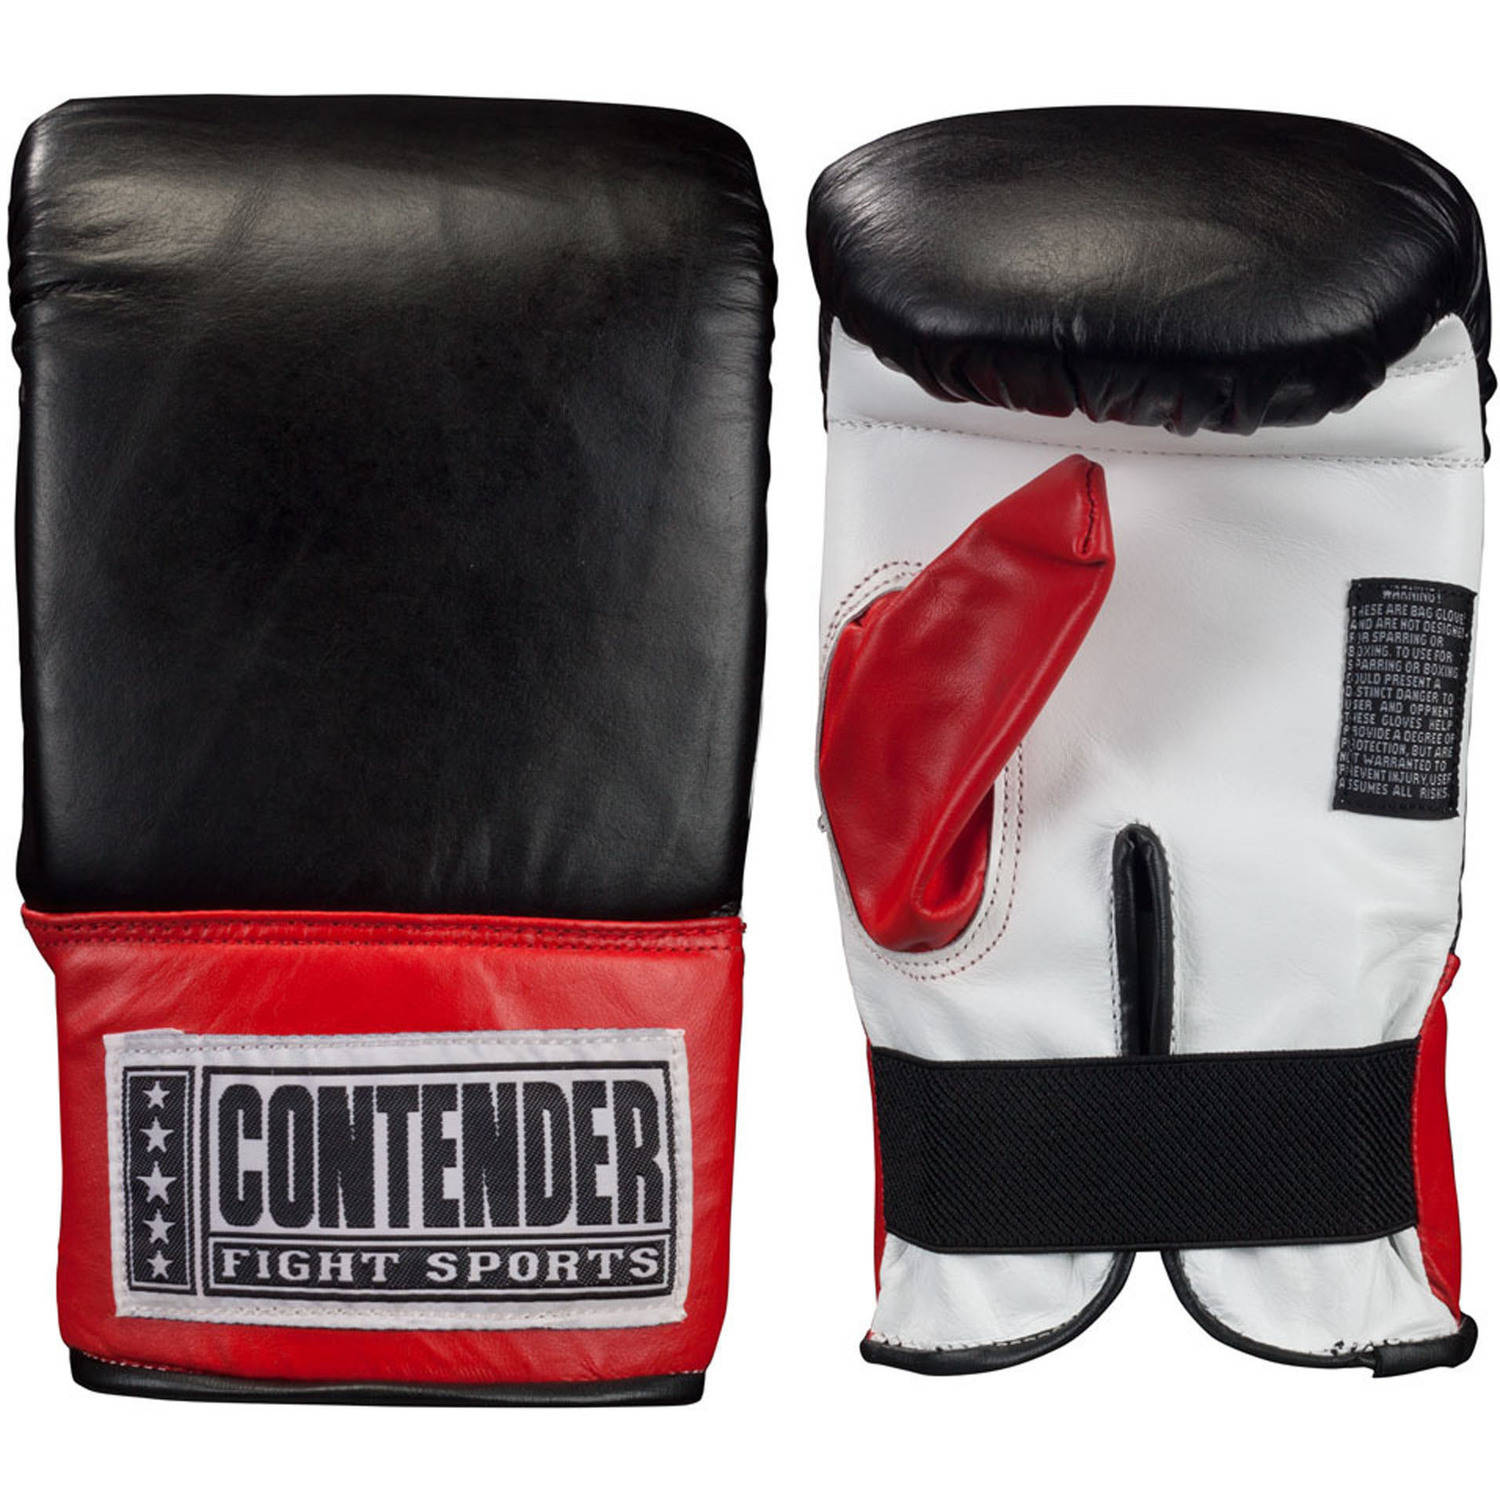 Contender Fight Sports Traditional Style Pro Fight Gloves, Extra Large, Black White Red by Contender